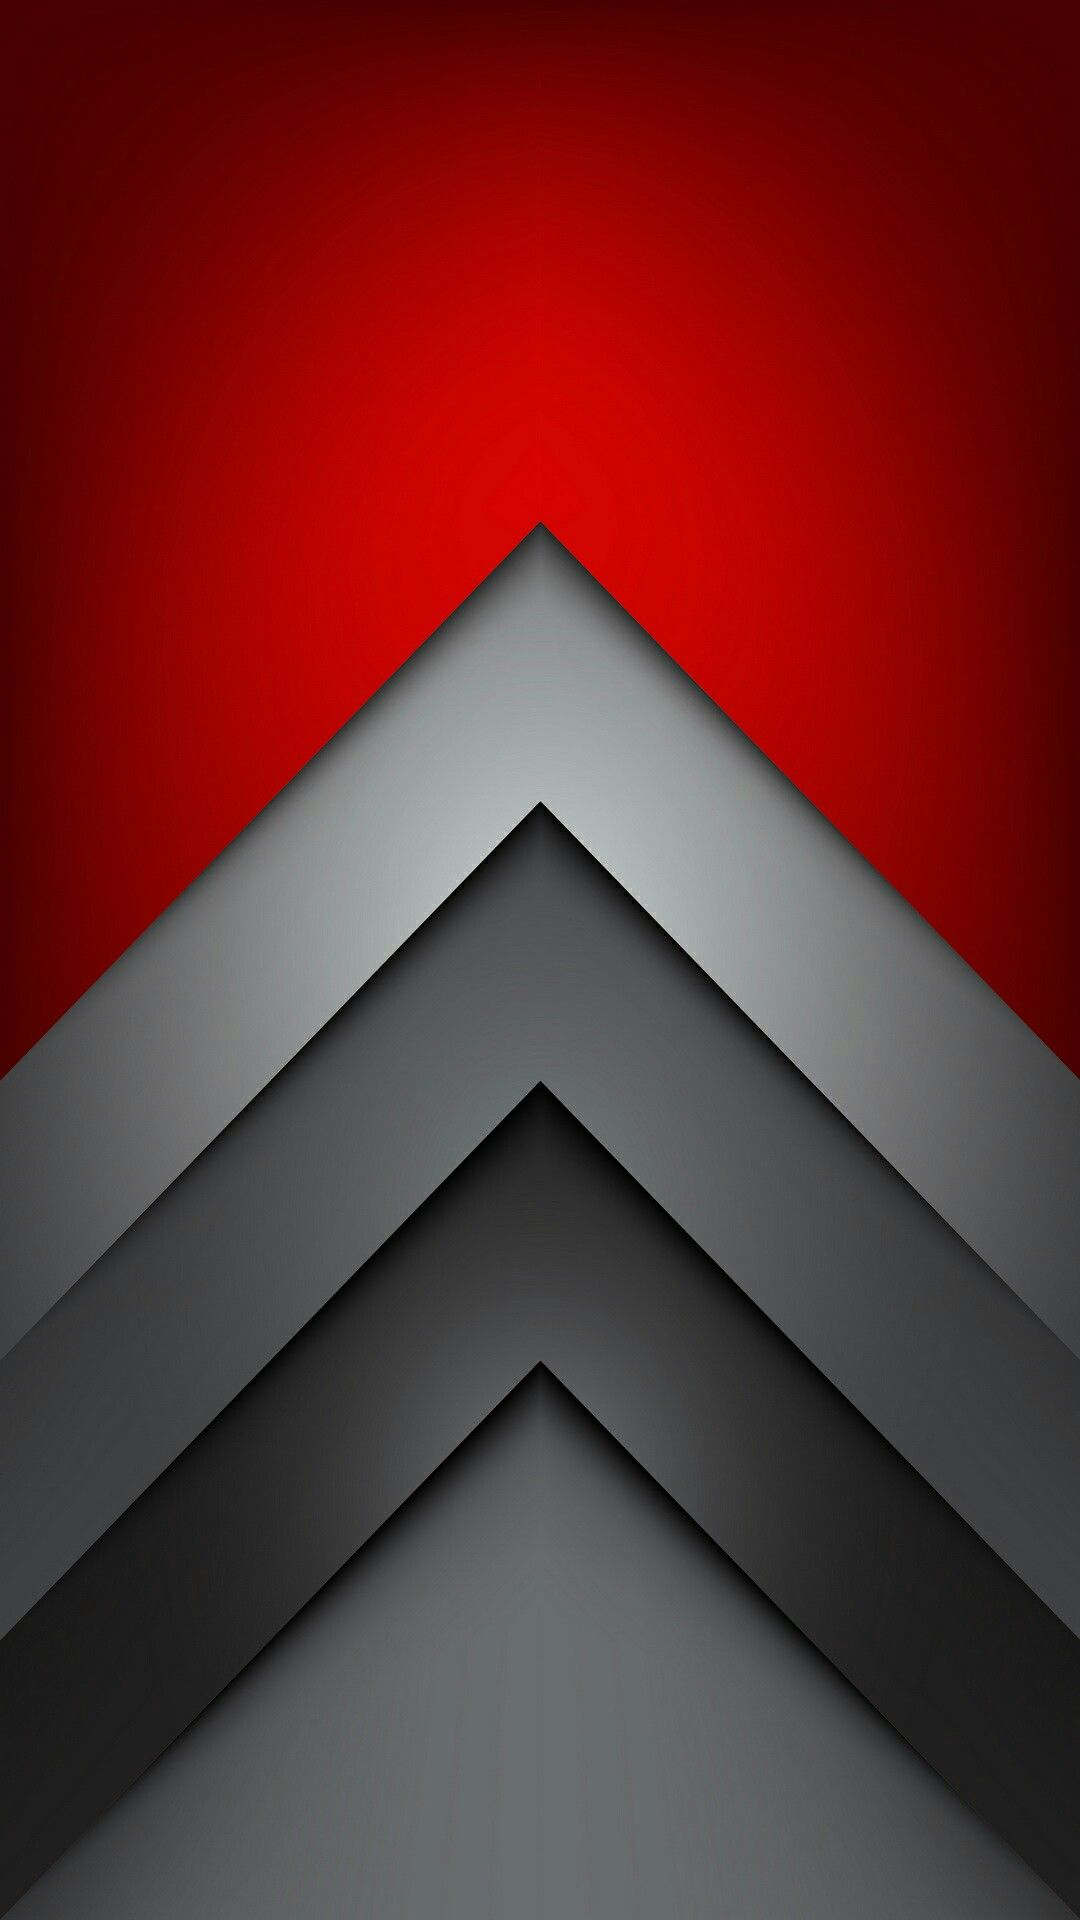 Red and Grey Chevron Wallpaper | Cellphone wallpaper ...